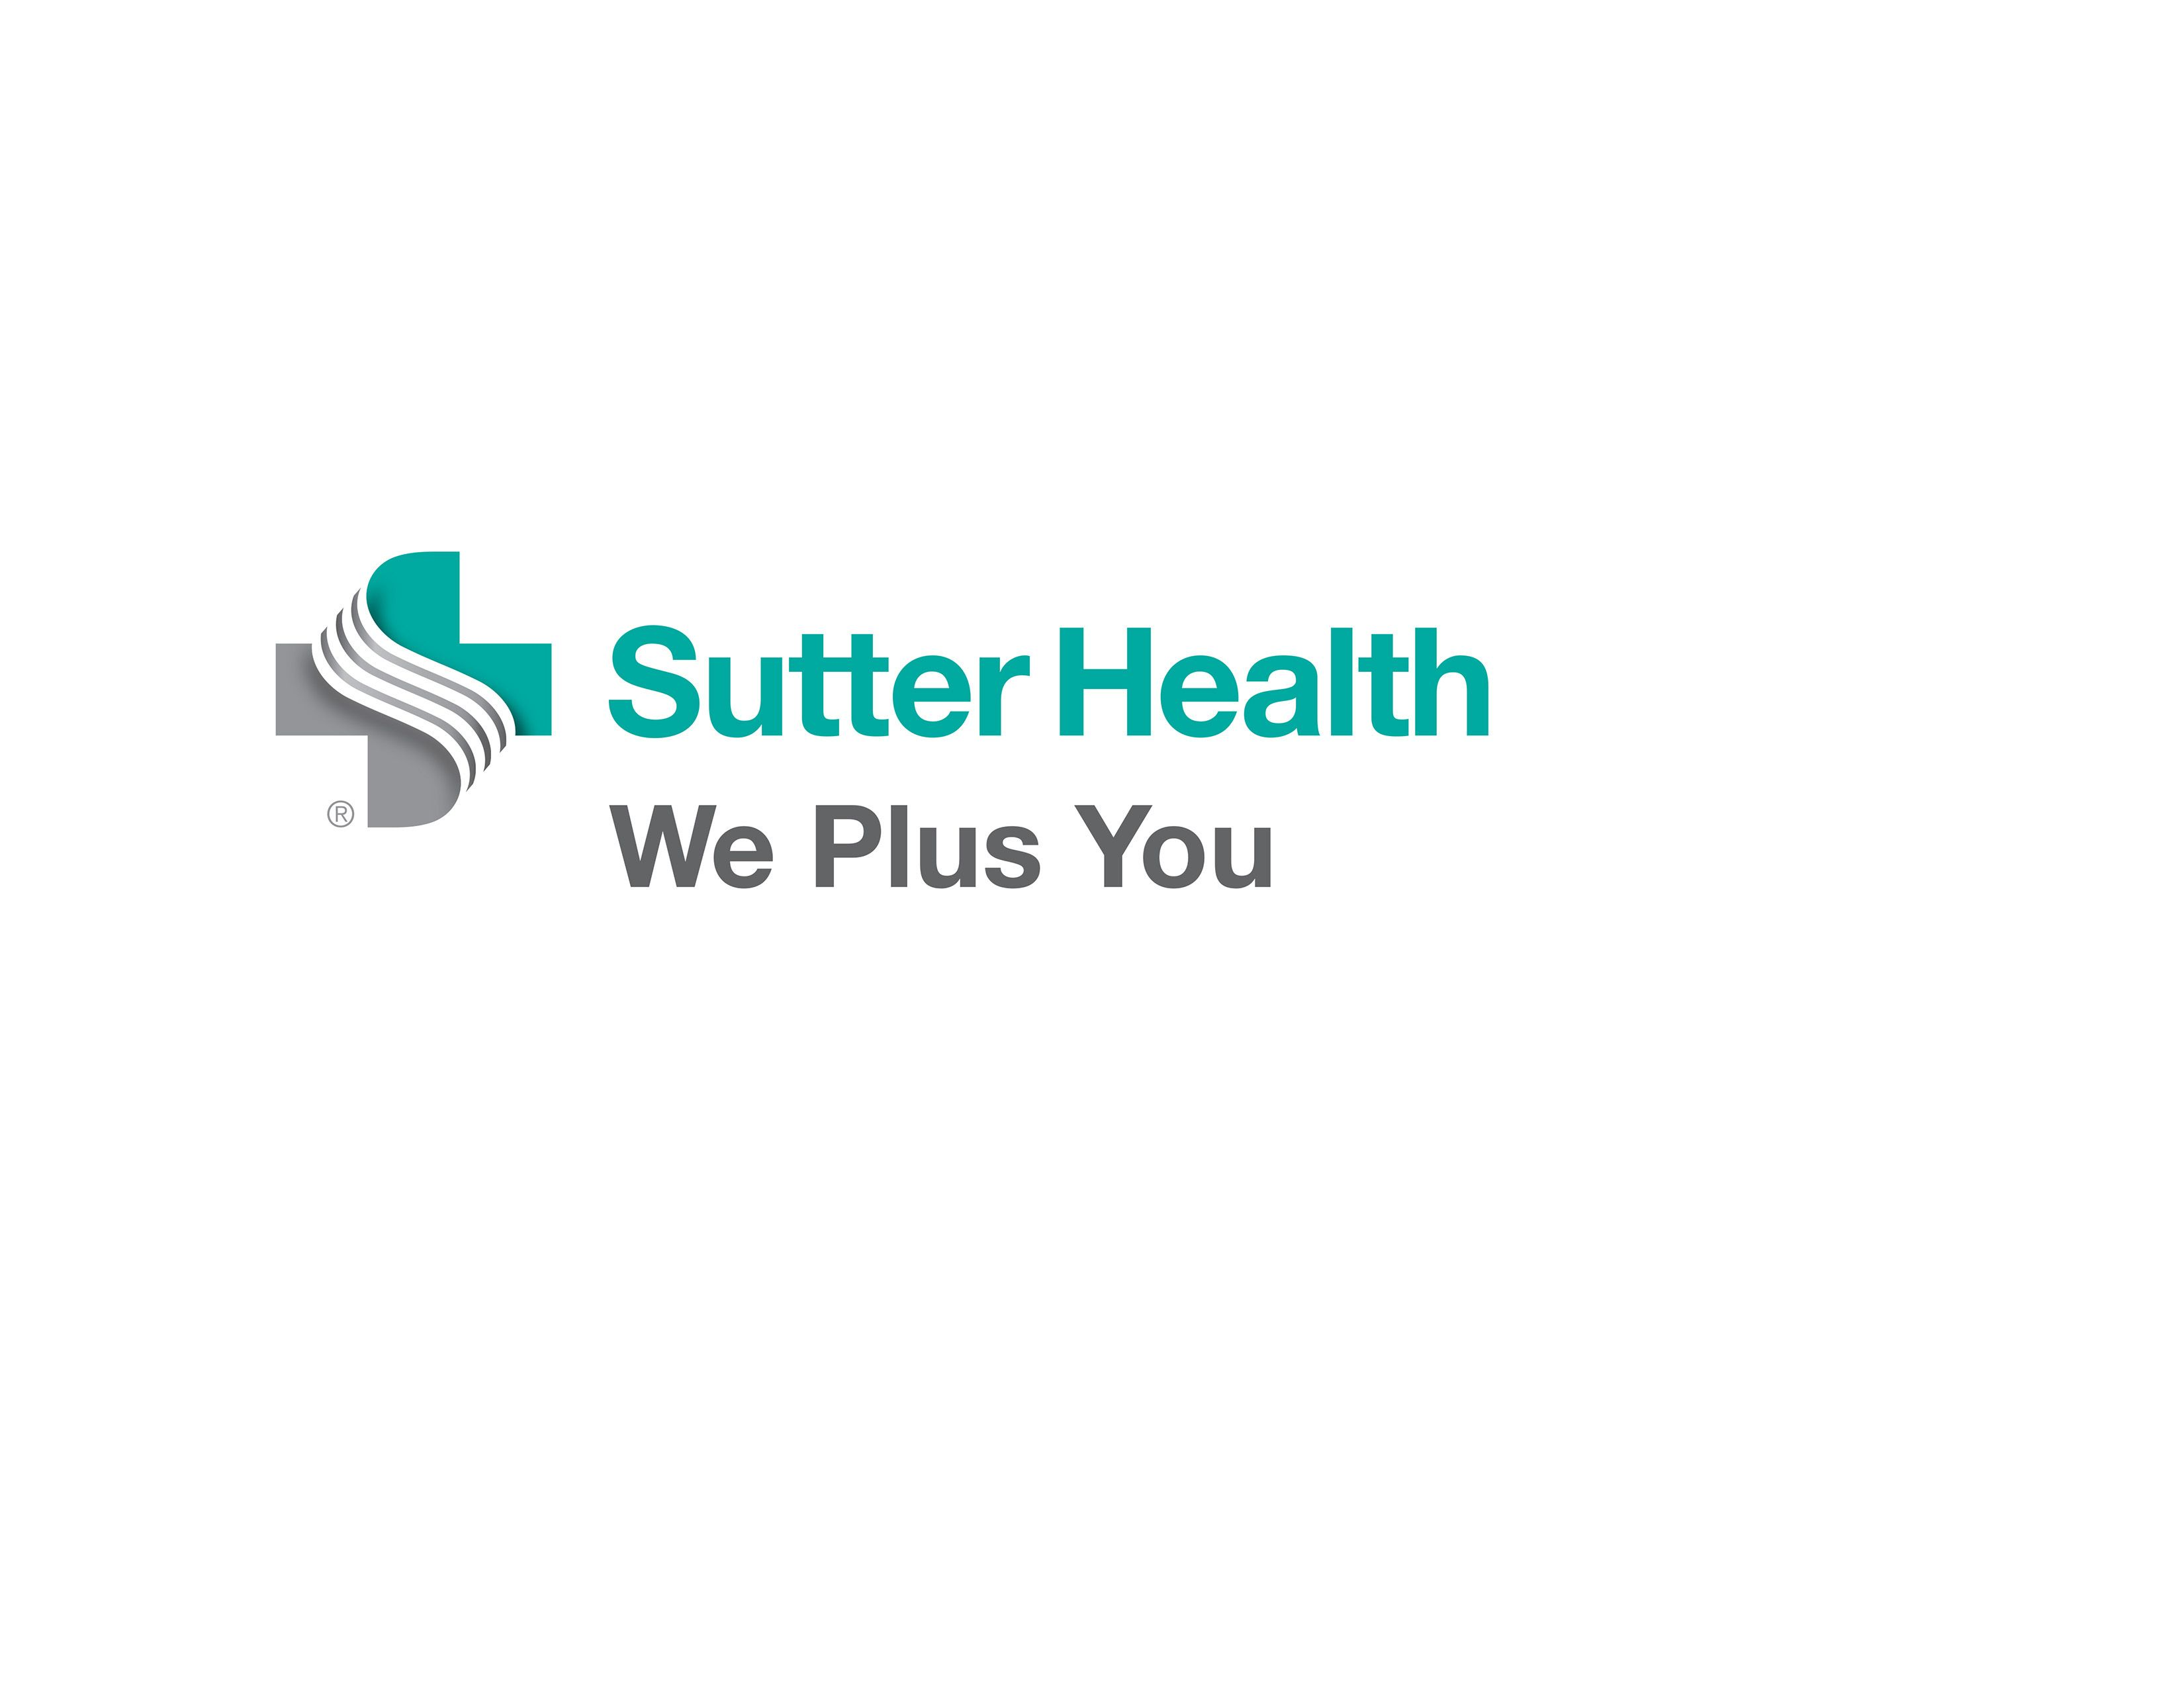 Sutterhealth And Blue Shield Of California Reached Agreement On A